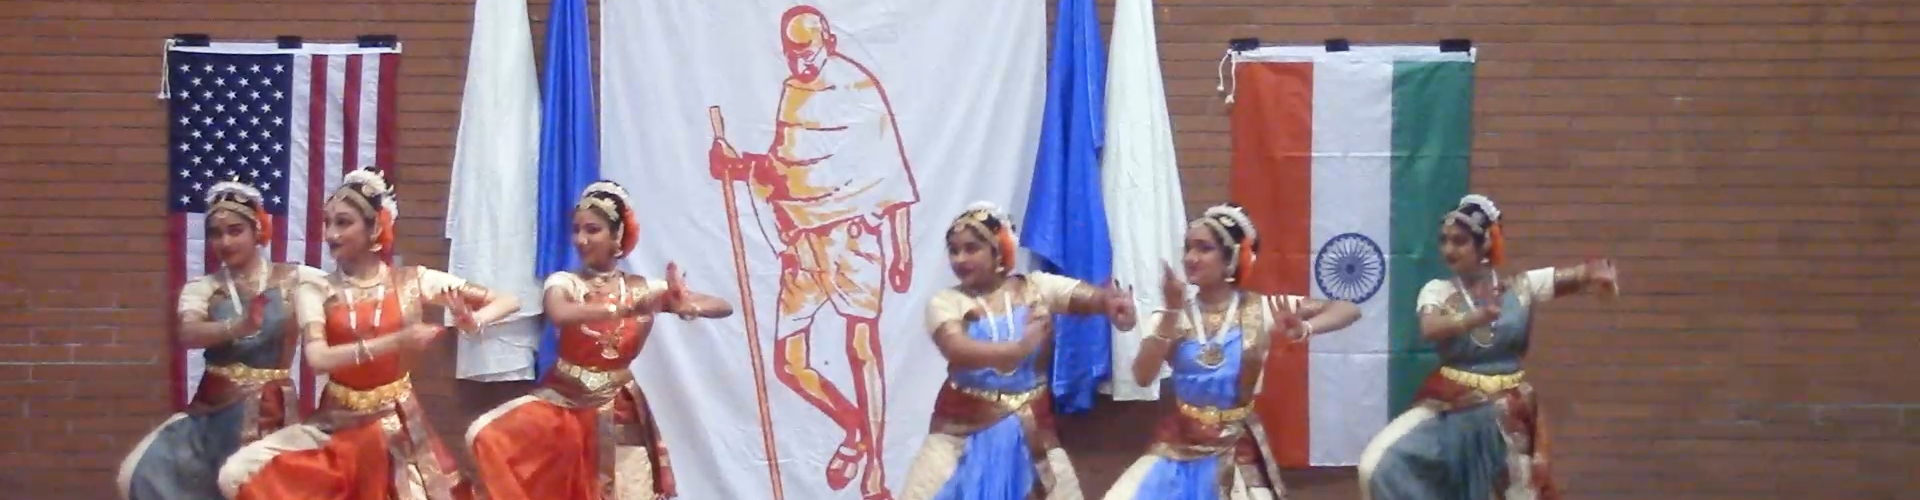 Dancers at India Day 2021